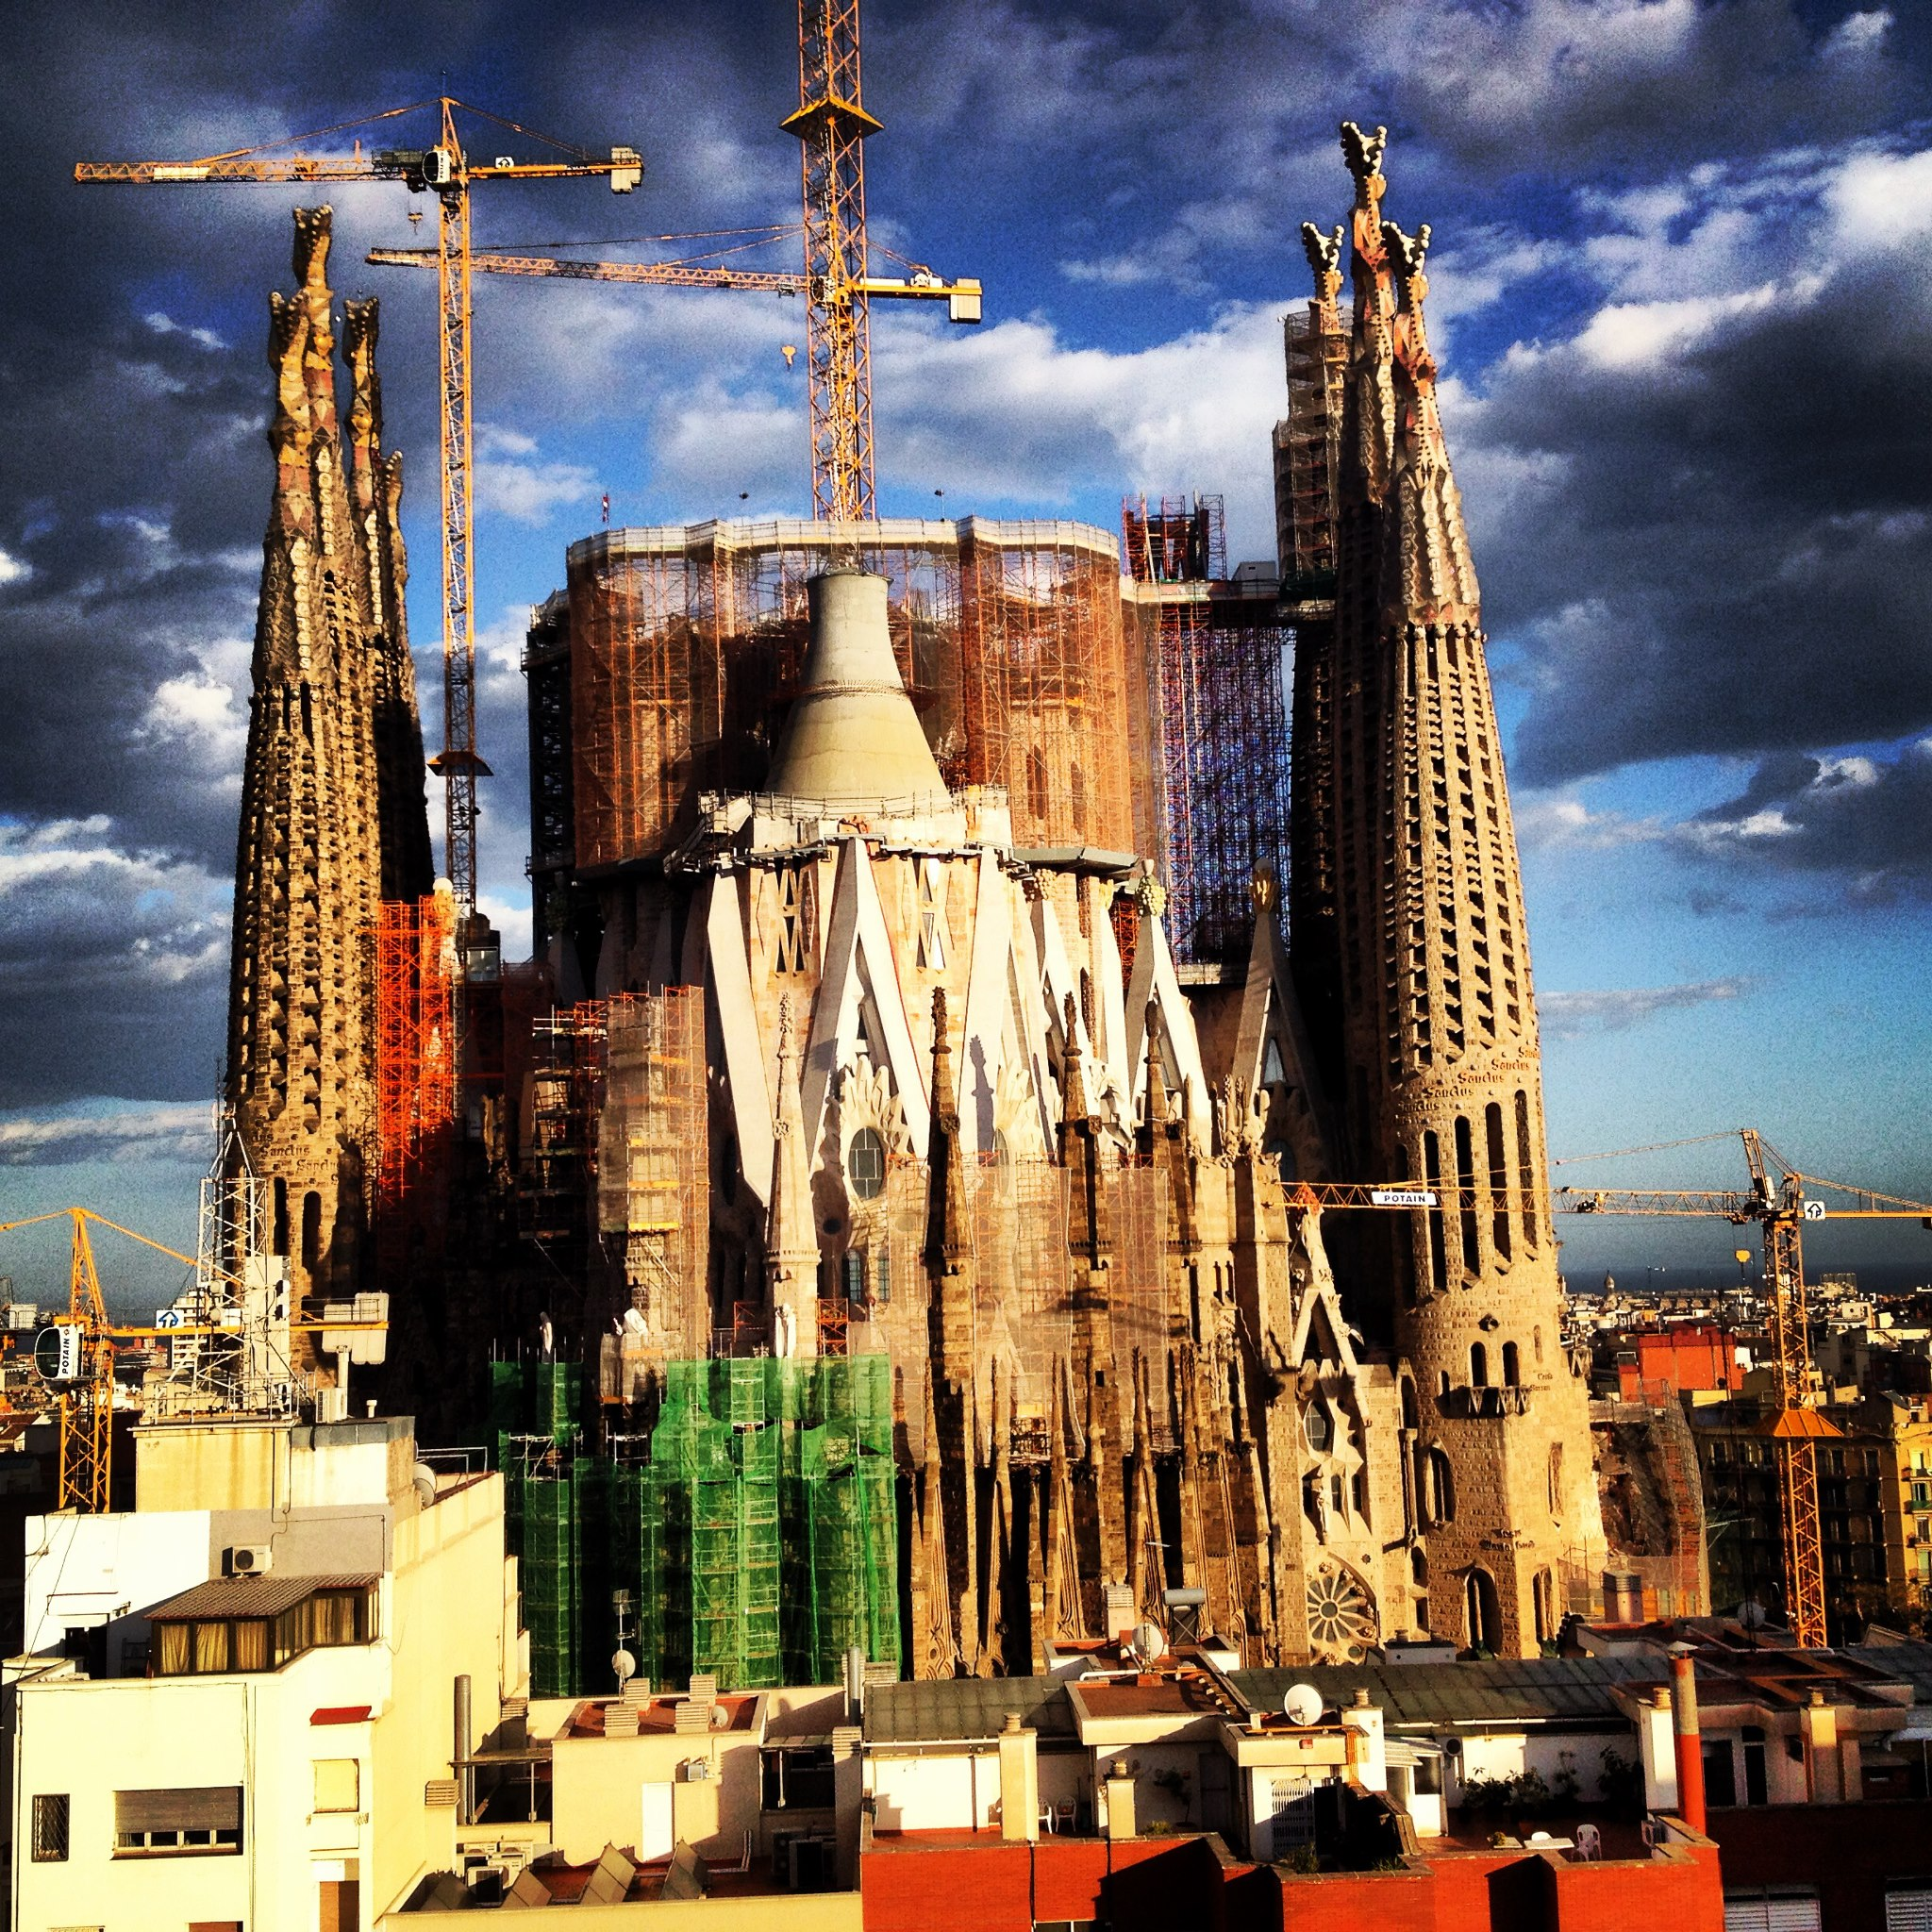 Barcelona A Snapshot Of One Of Europe S Finest Cities Rant And Rave